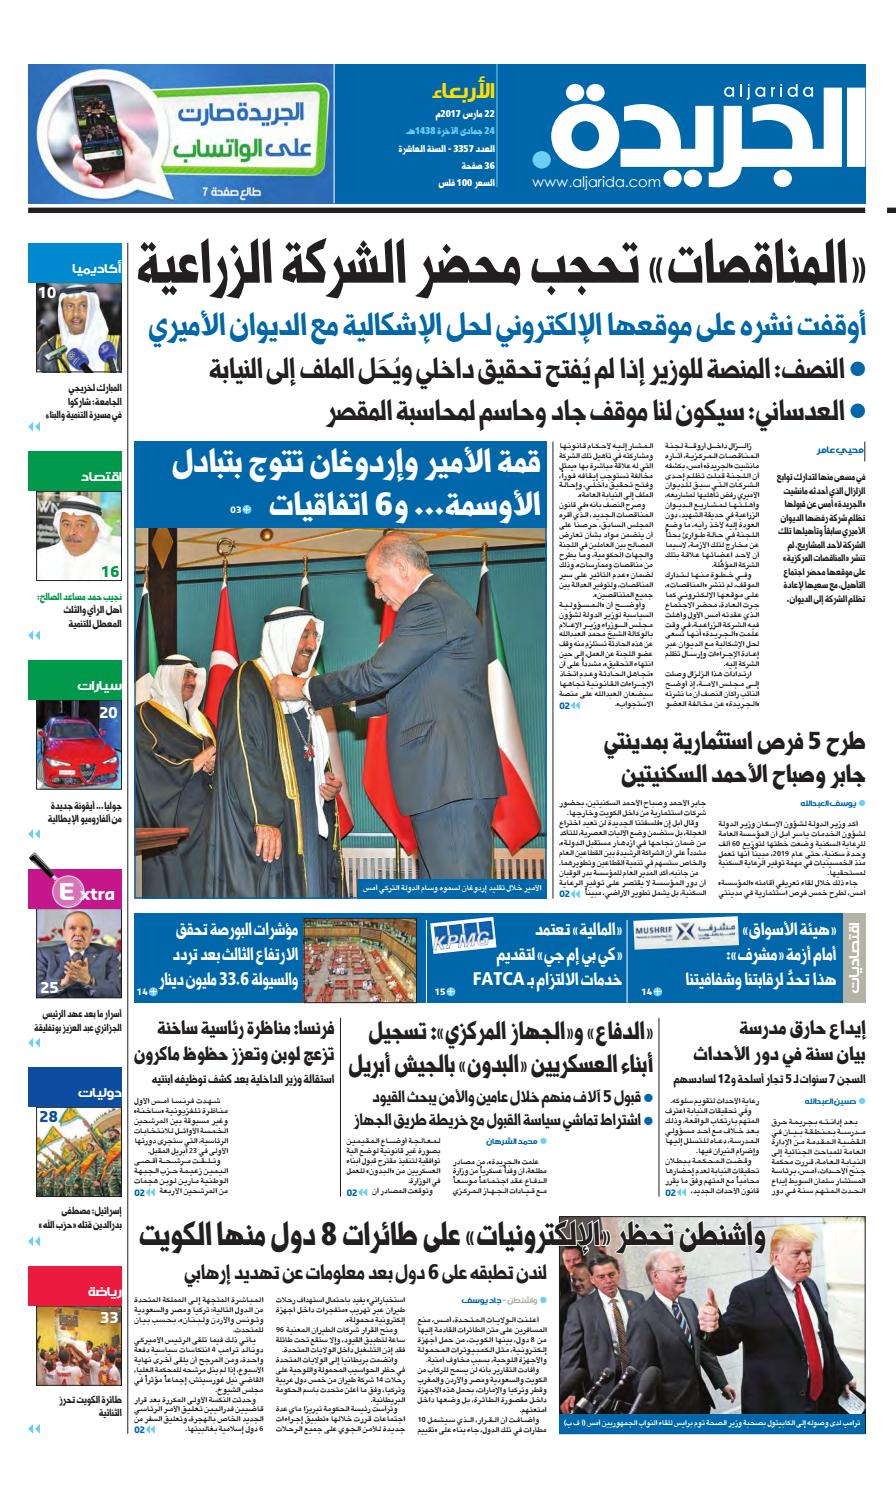 b4a0535e6 عدد الجريدة 22 مارس 2017 by Aljarida Newspaper - issuu